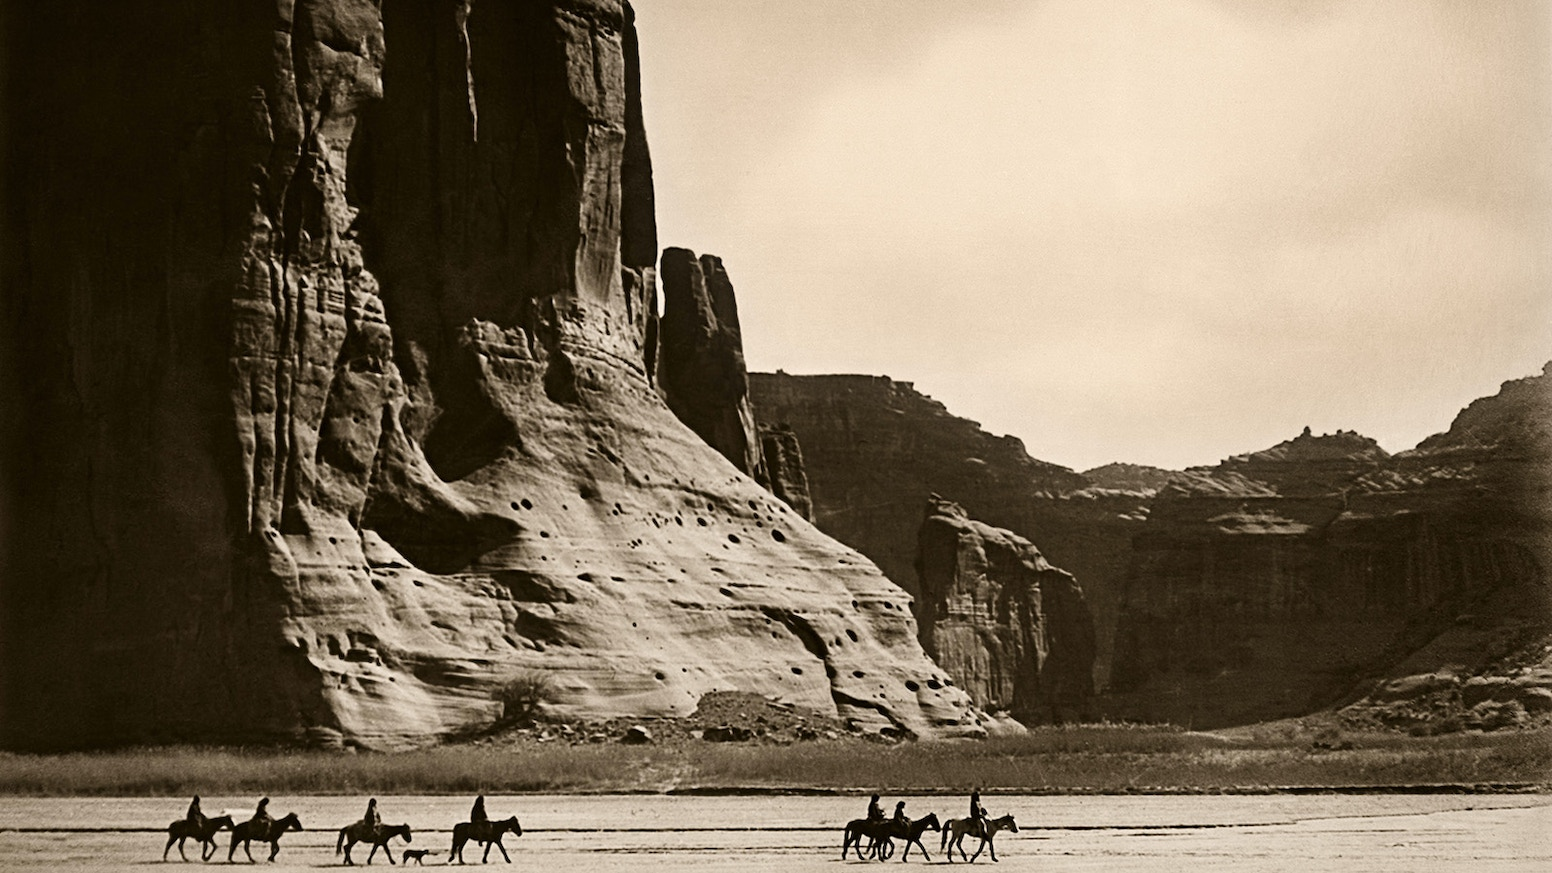 Photogravure prints made from Edward Curtis' own glass plate negatives, passed down to his great-grandson.